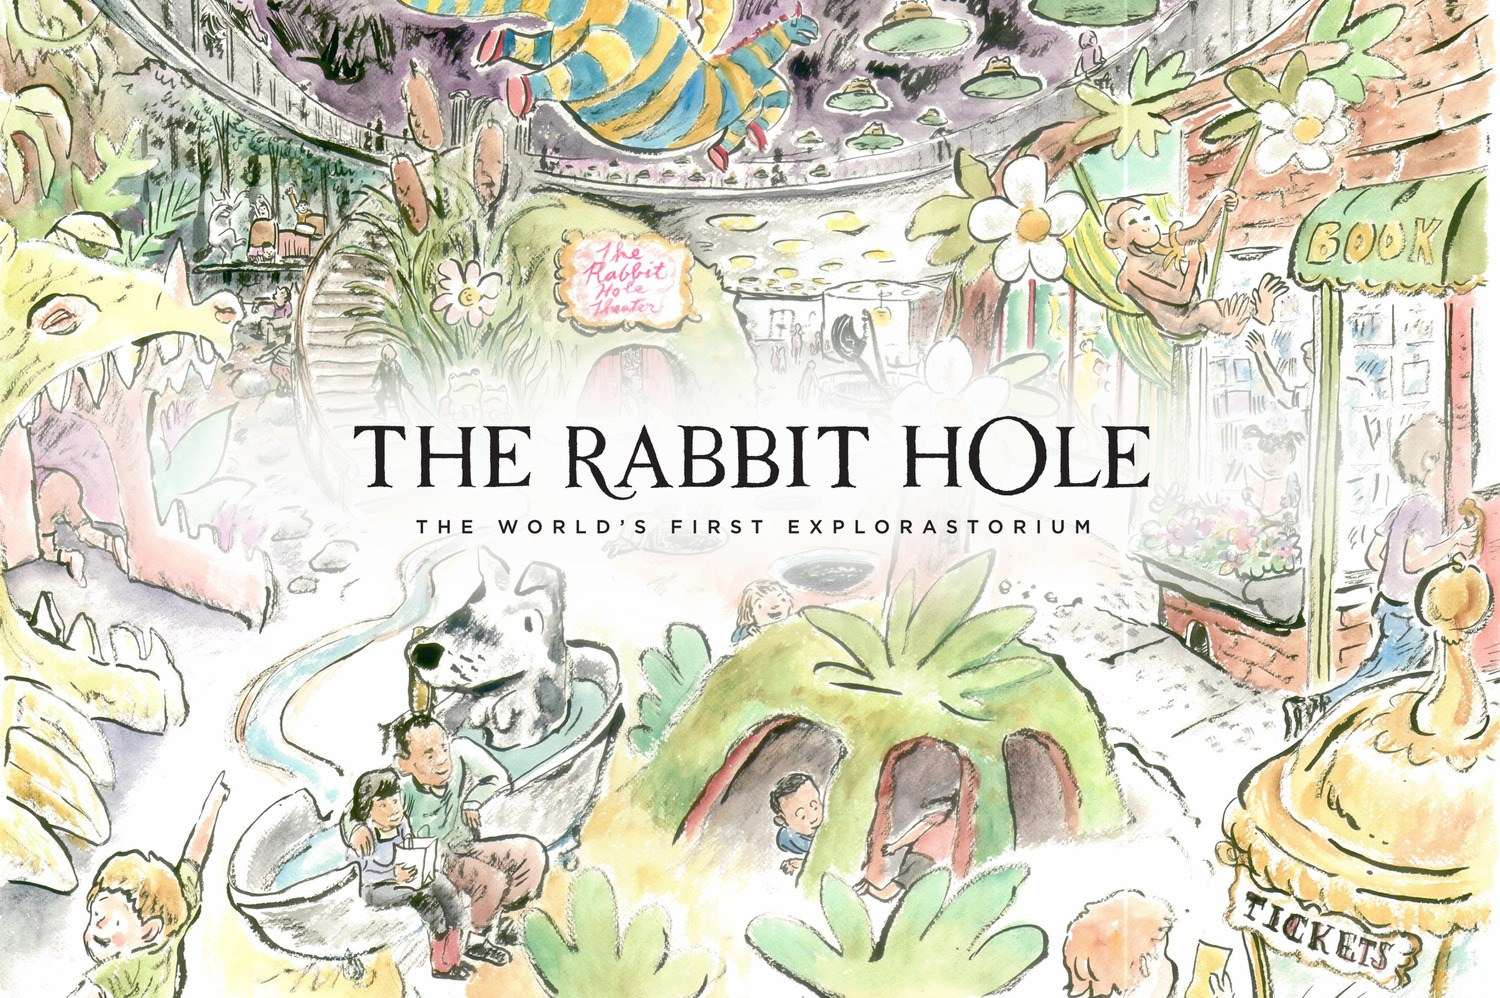 The Rabbit Hole - The Rabbit Hole is a nonprofit museum and the world's first exploratorium. Focused on children's books, The Rabbit Hole encourages reading and learning.